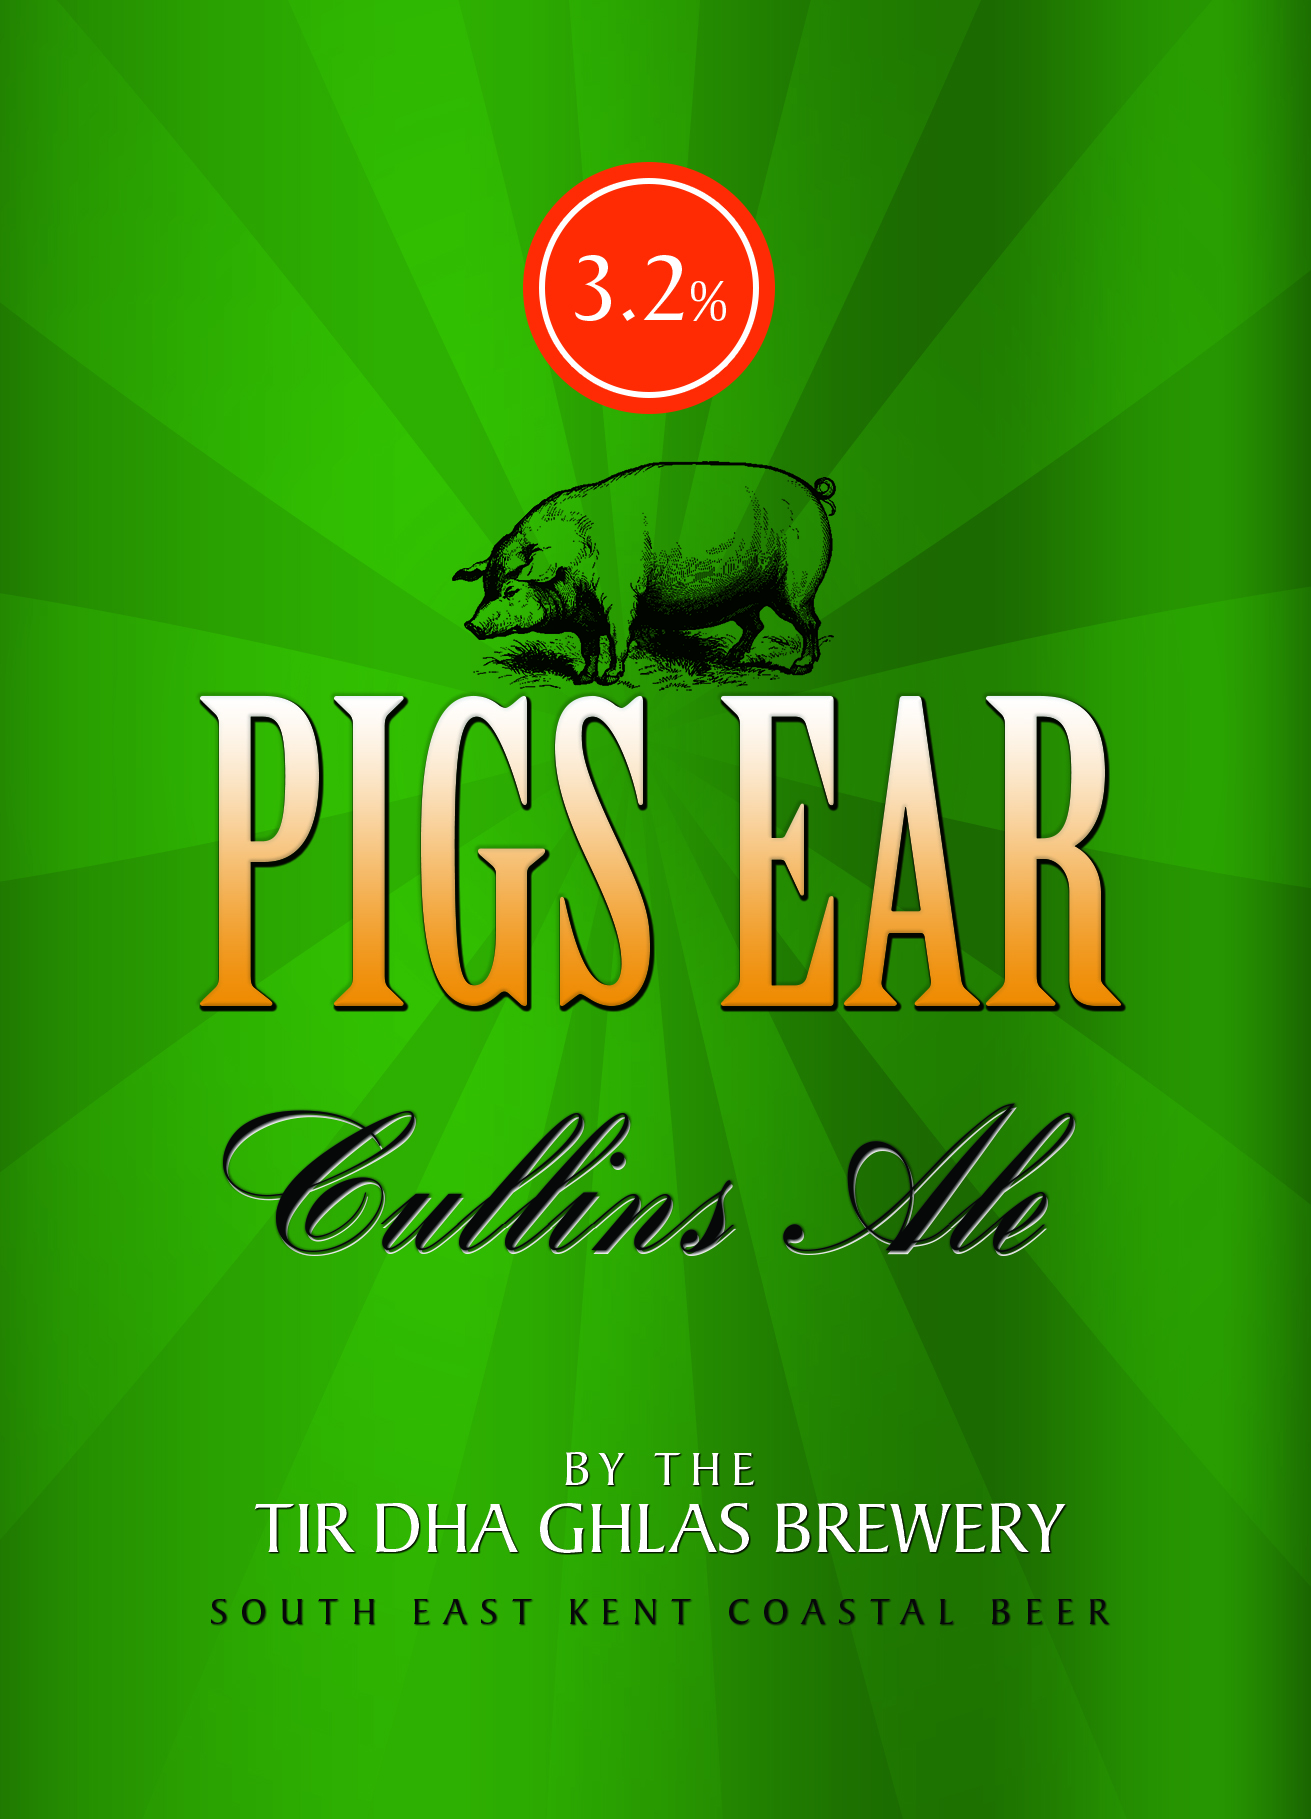 c beer clip A6 pigs